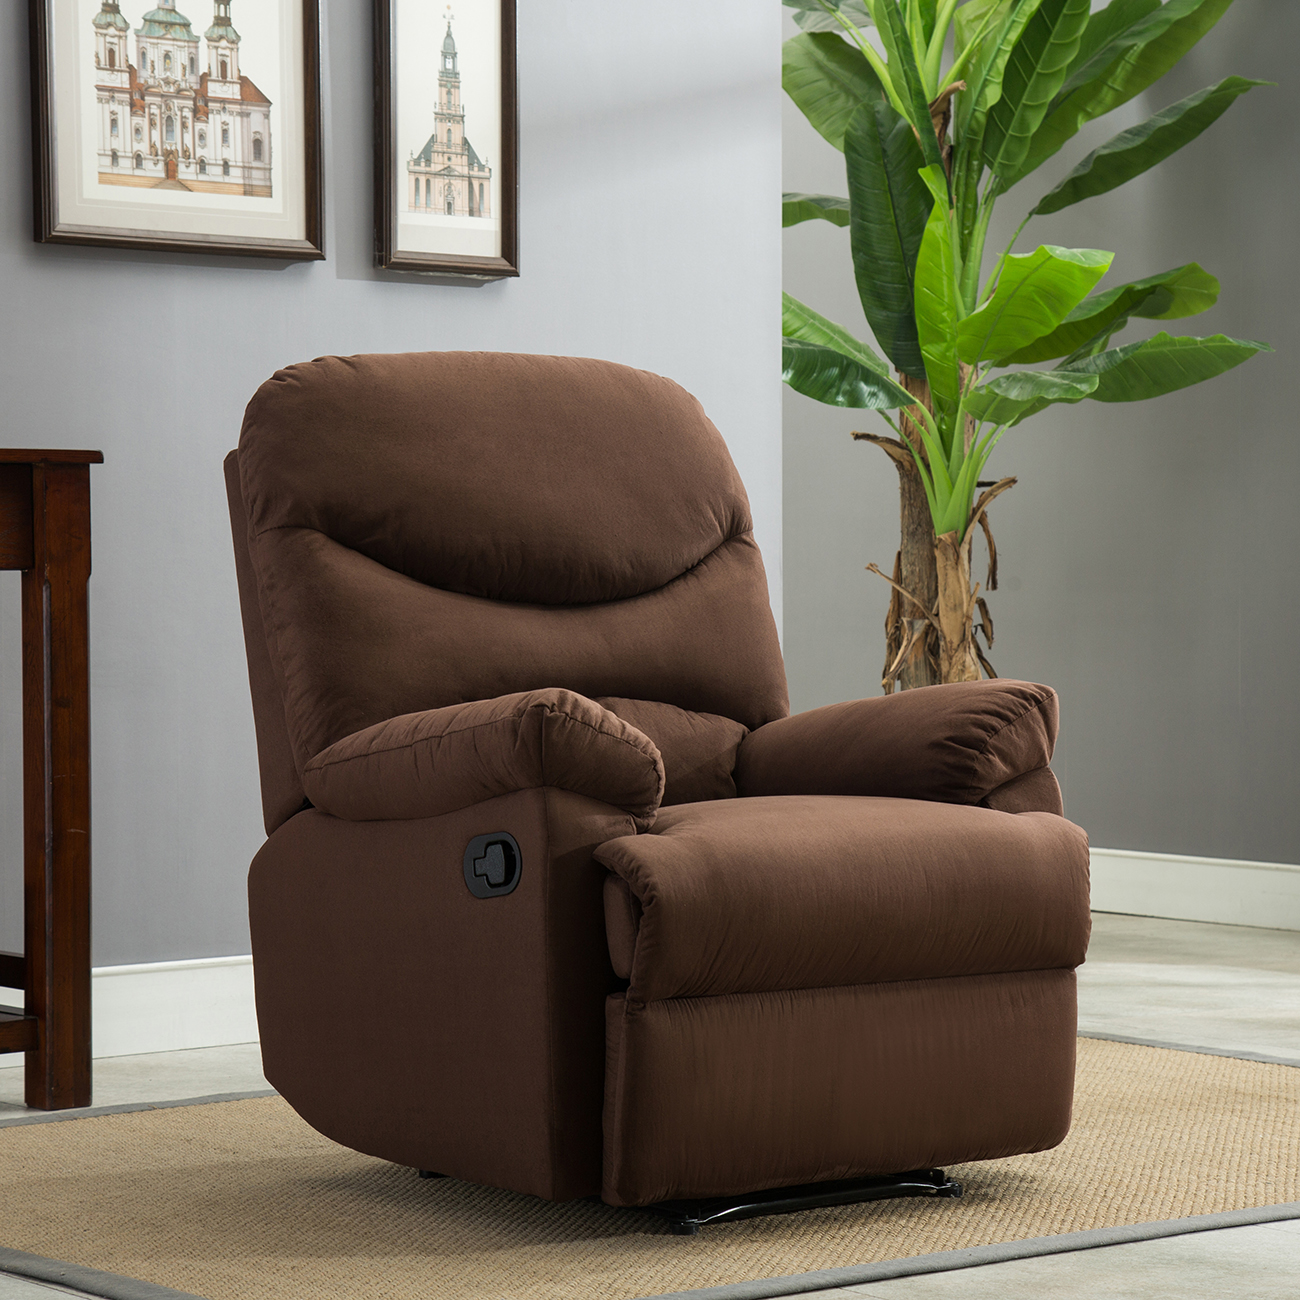 Recliner Chair Sofa Living Room Furniture Microfiber Reclining Padded Seat  Brown Part 81